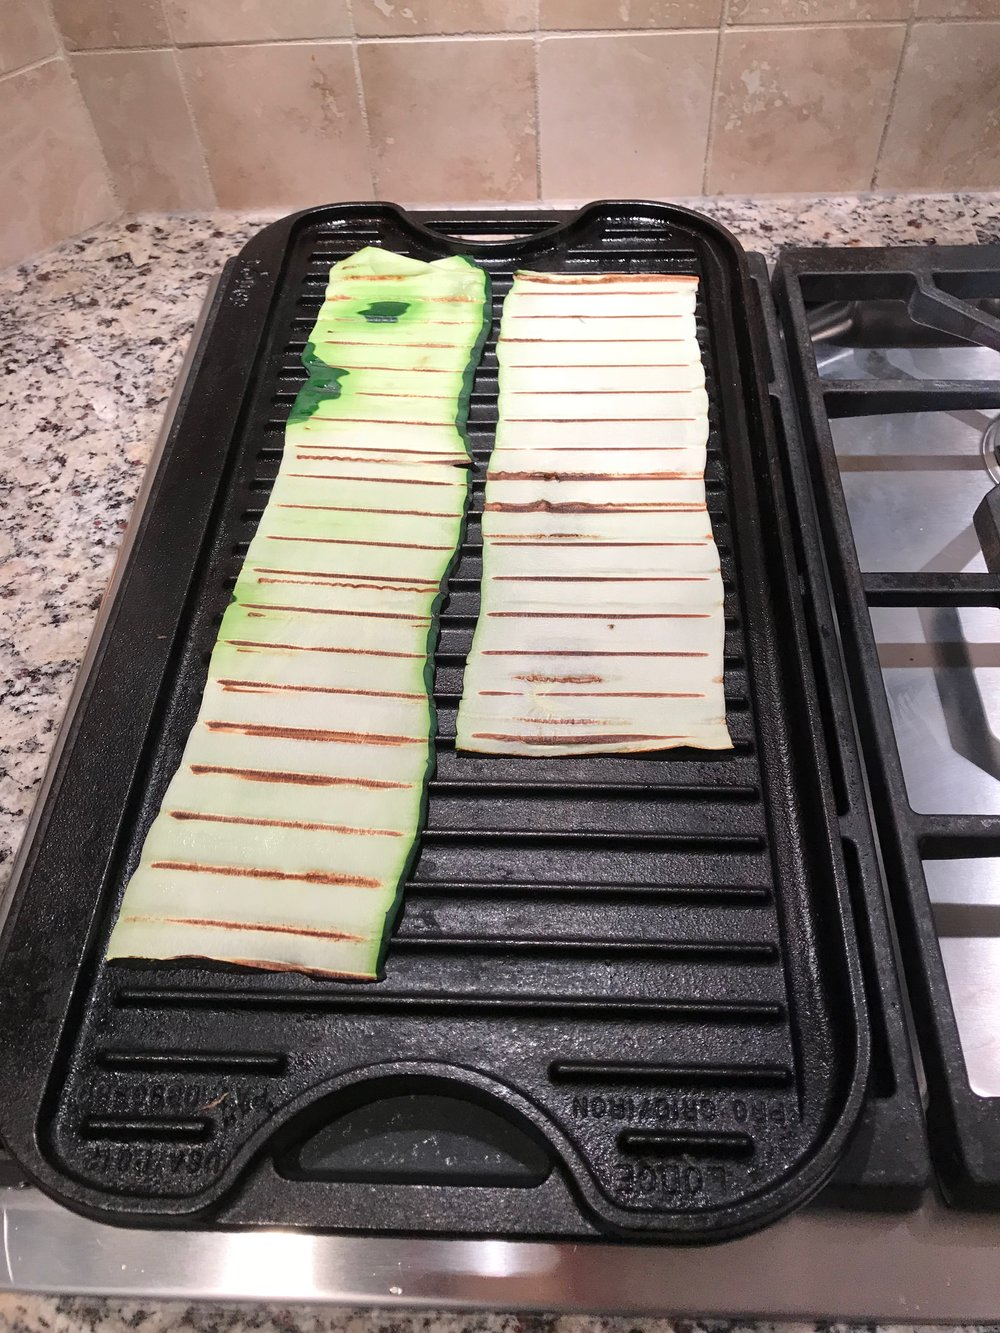 Grill the zucchini sheets for about 30 seconds on each side or until they are marked from grill and seem dry.